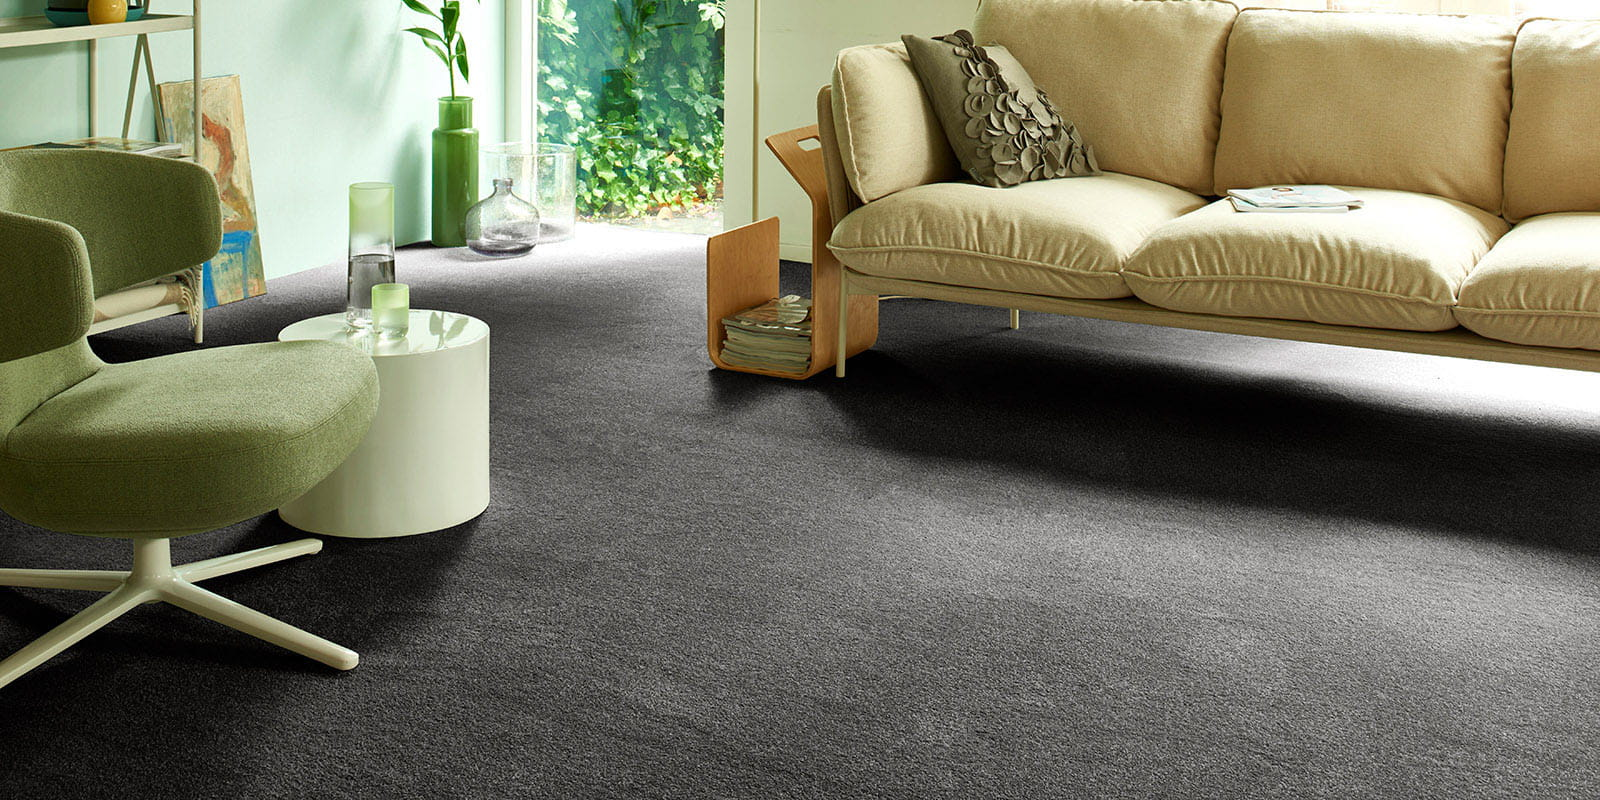 Sedna® Carpet - Varuna 97 - Charcoal - Living_02